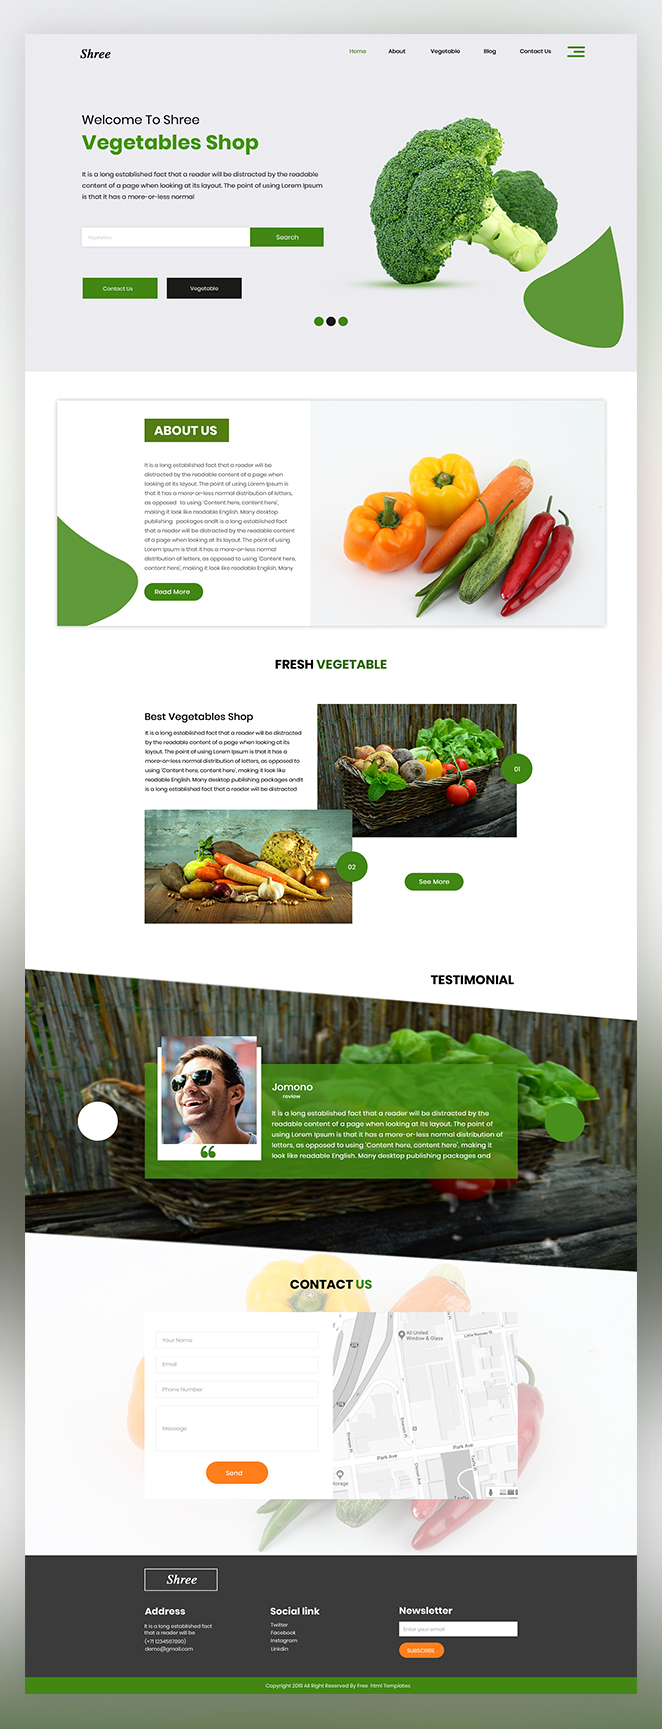 Shree Vegetable Shop psd template